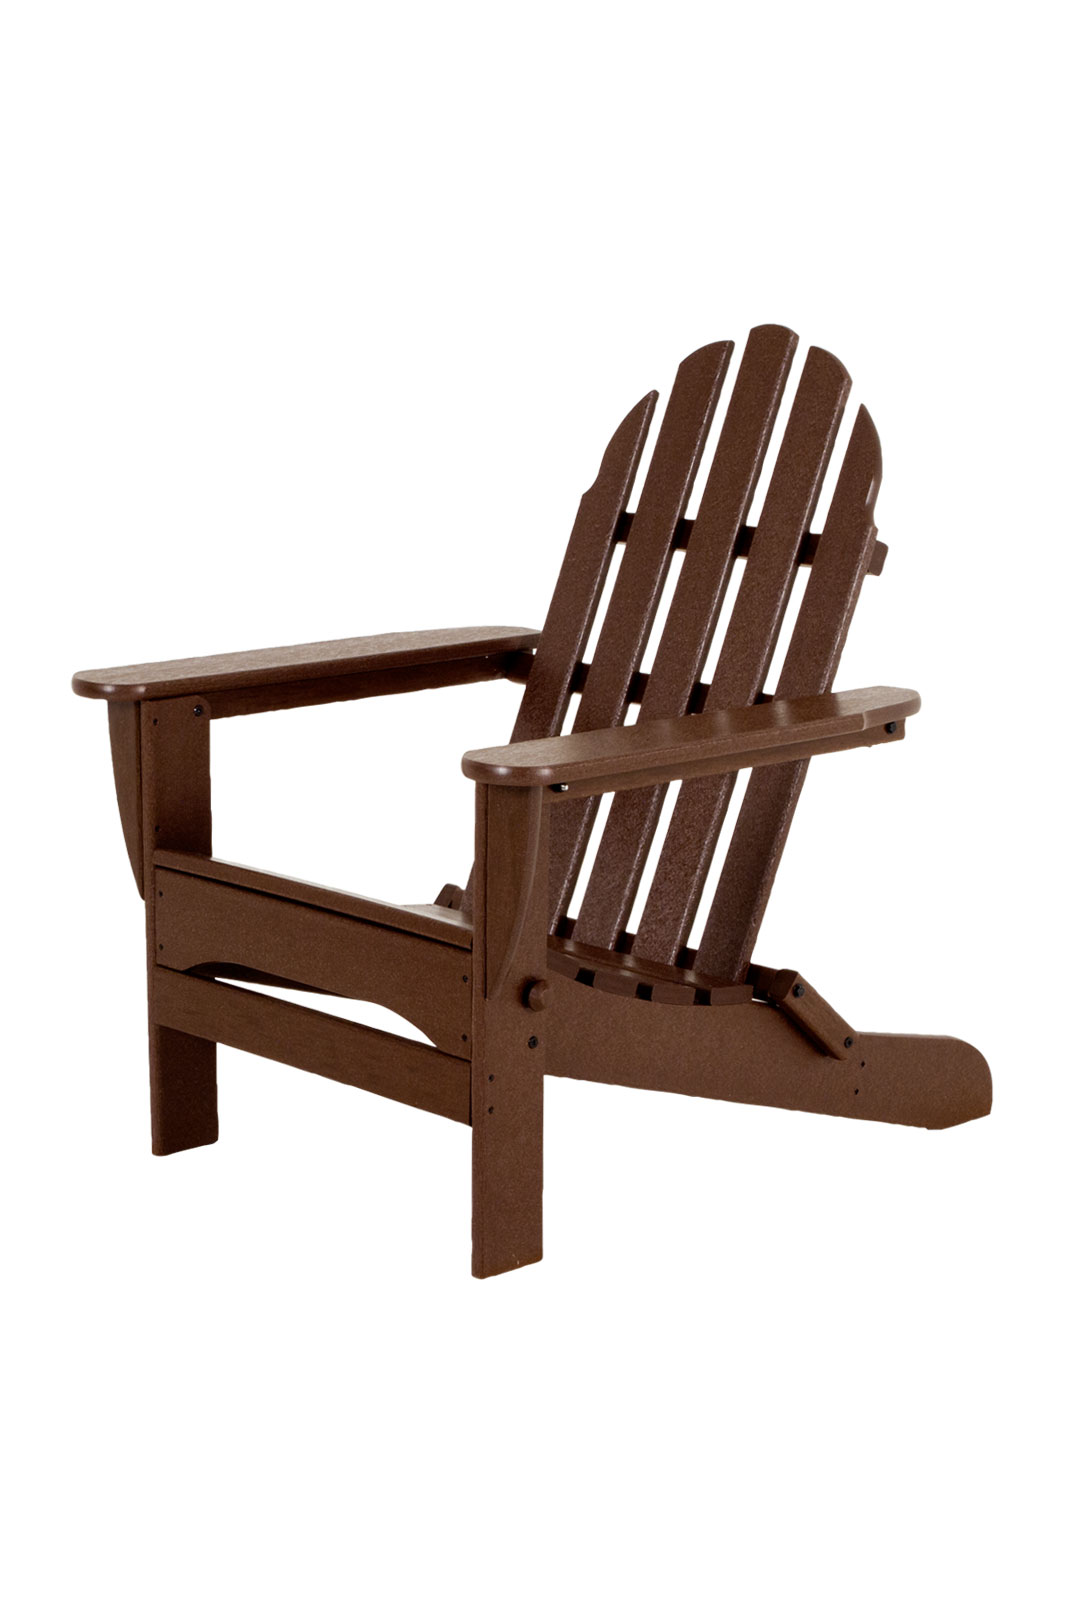 How To Finish Unfinished Adirondack Chairs Ch Wood